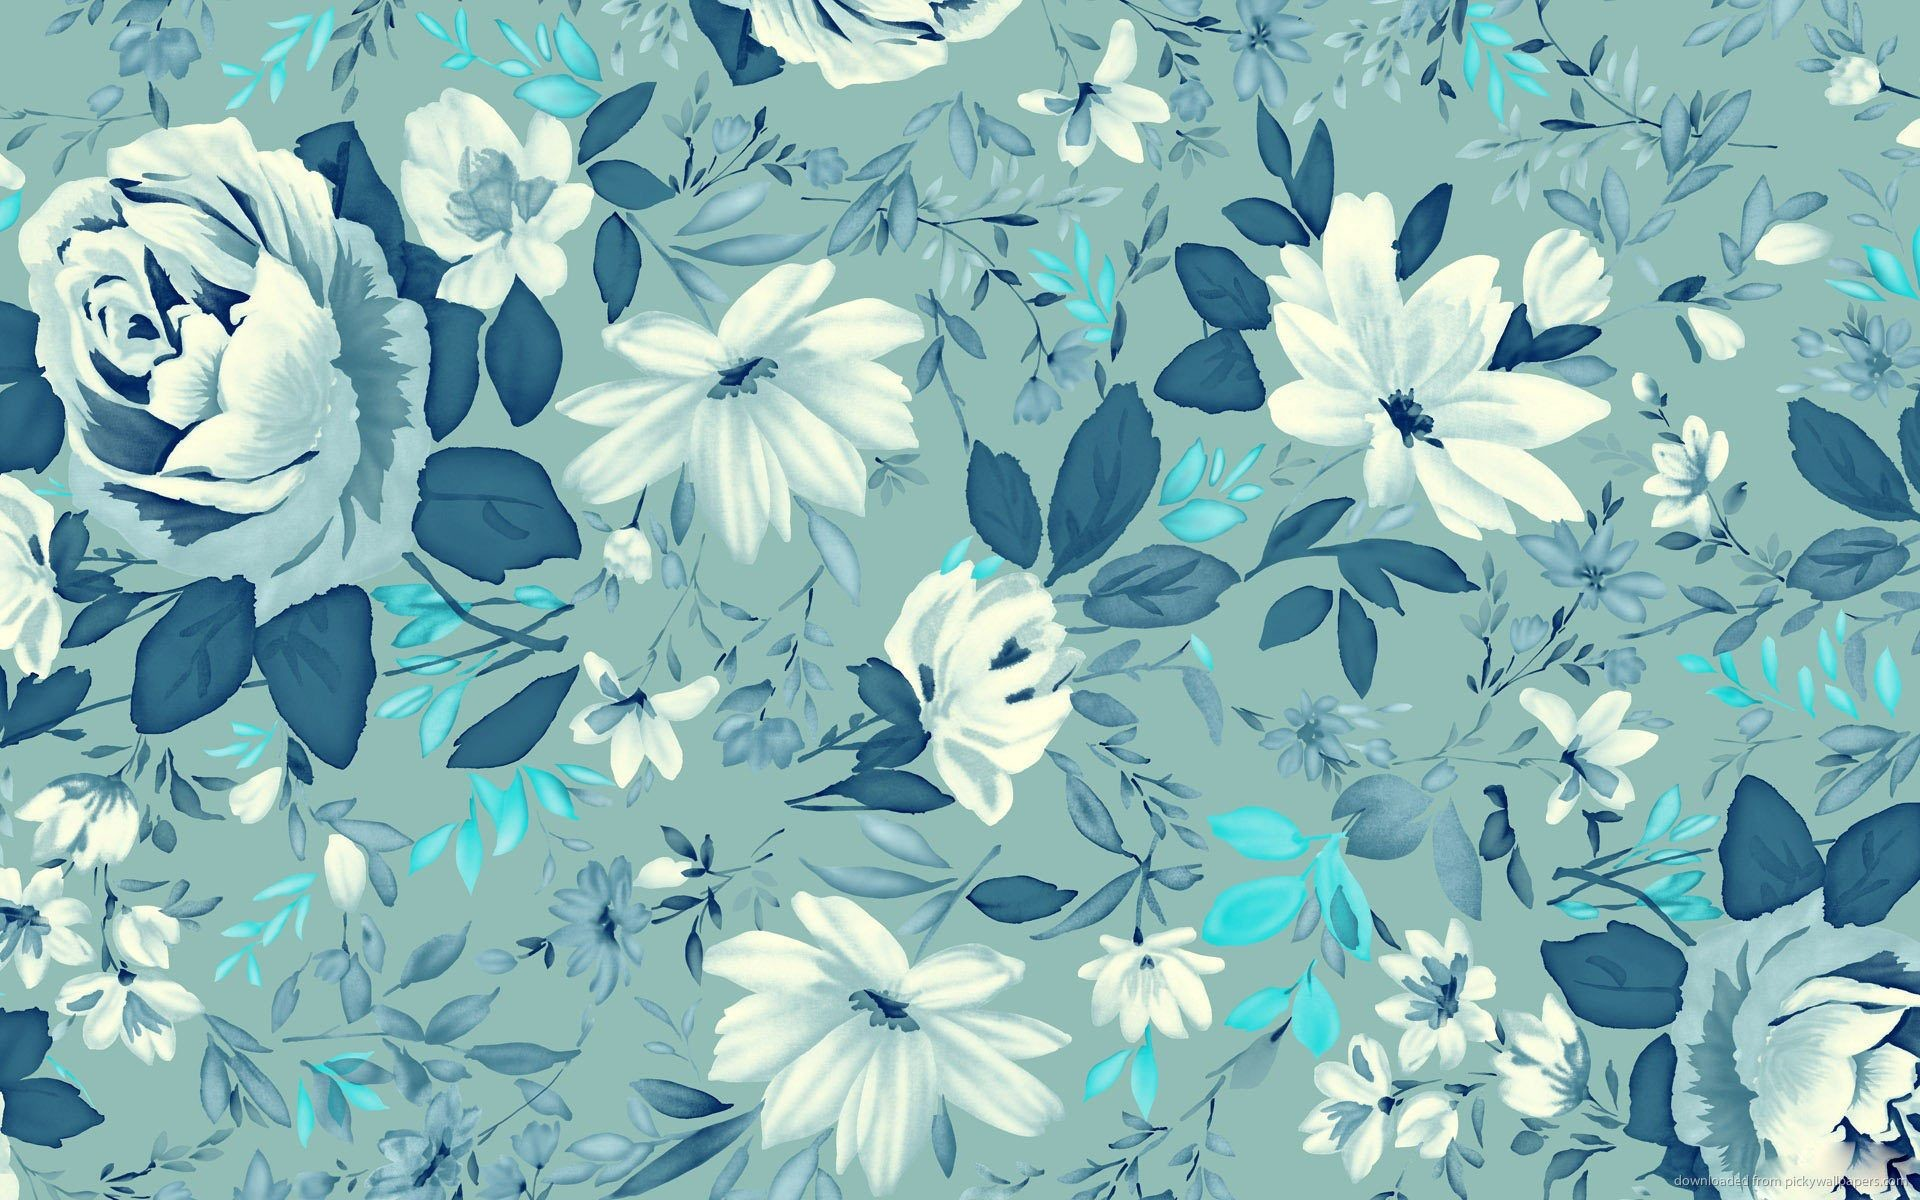 Res: 1920x1200, Light Blue Flower Wallpaper 1024×768 Blue Flowers Images Wallpapers (36  Wallpapers) |